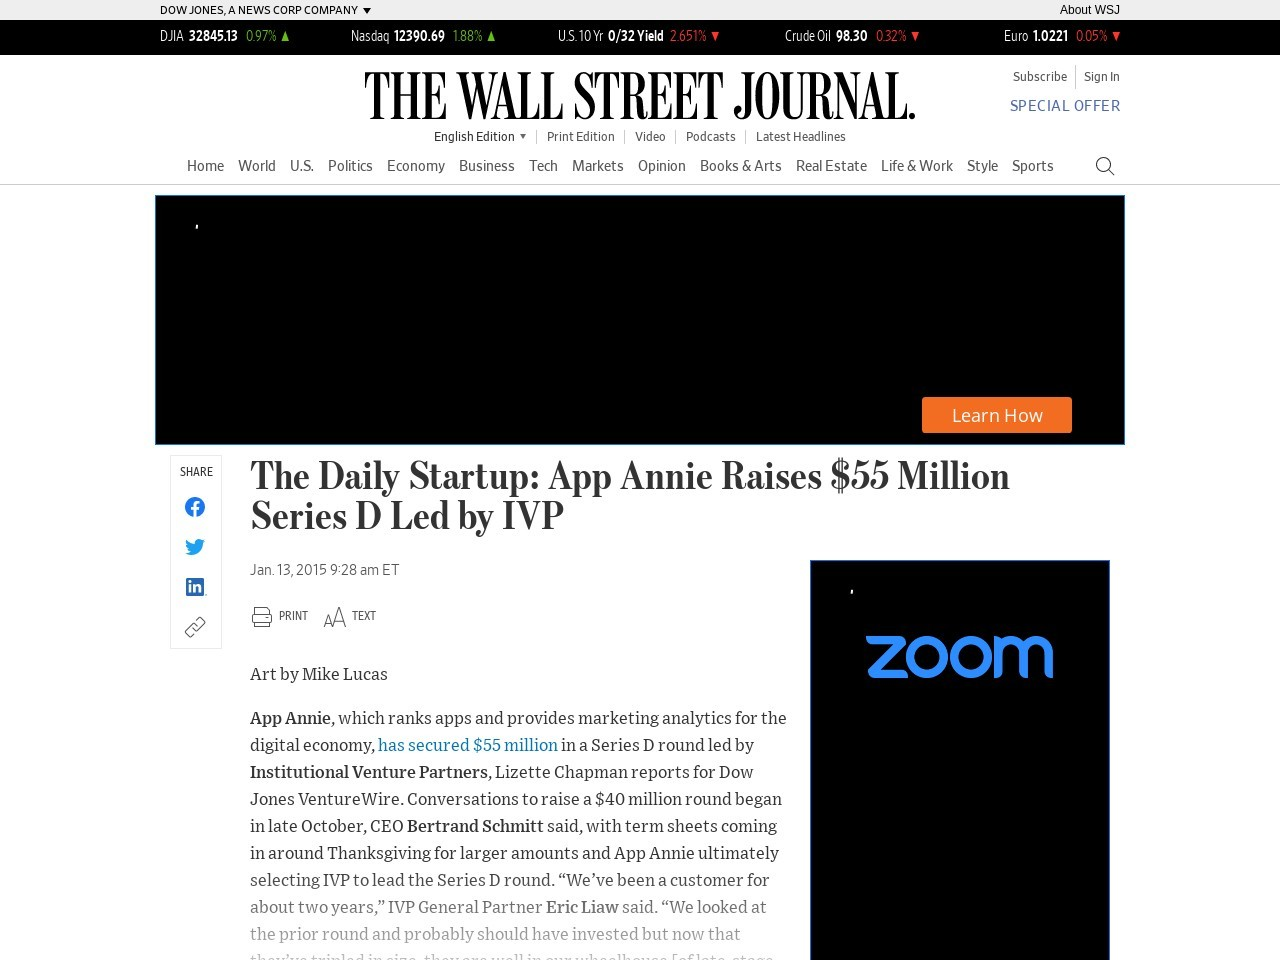 The Daily Startup: App Annie Raises $55 Million Series D Led by IVP